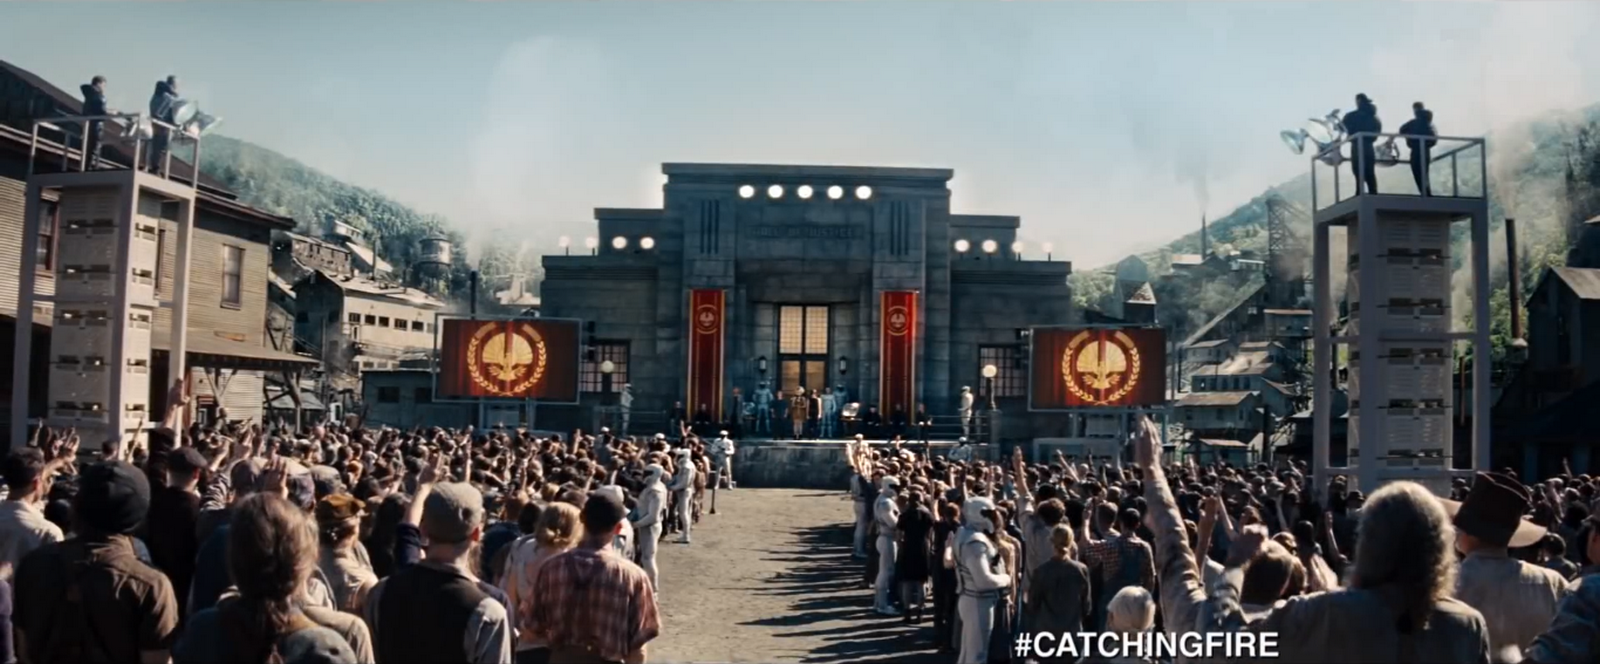 The Hunger Games Directed by - Gary Ross. - Sheet4